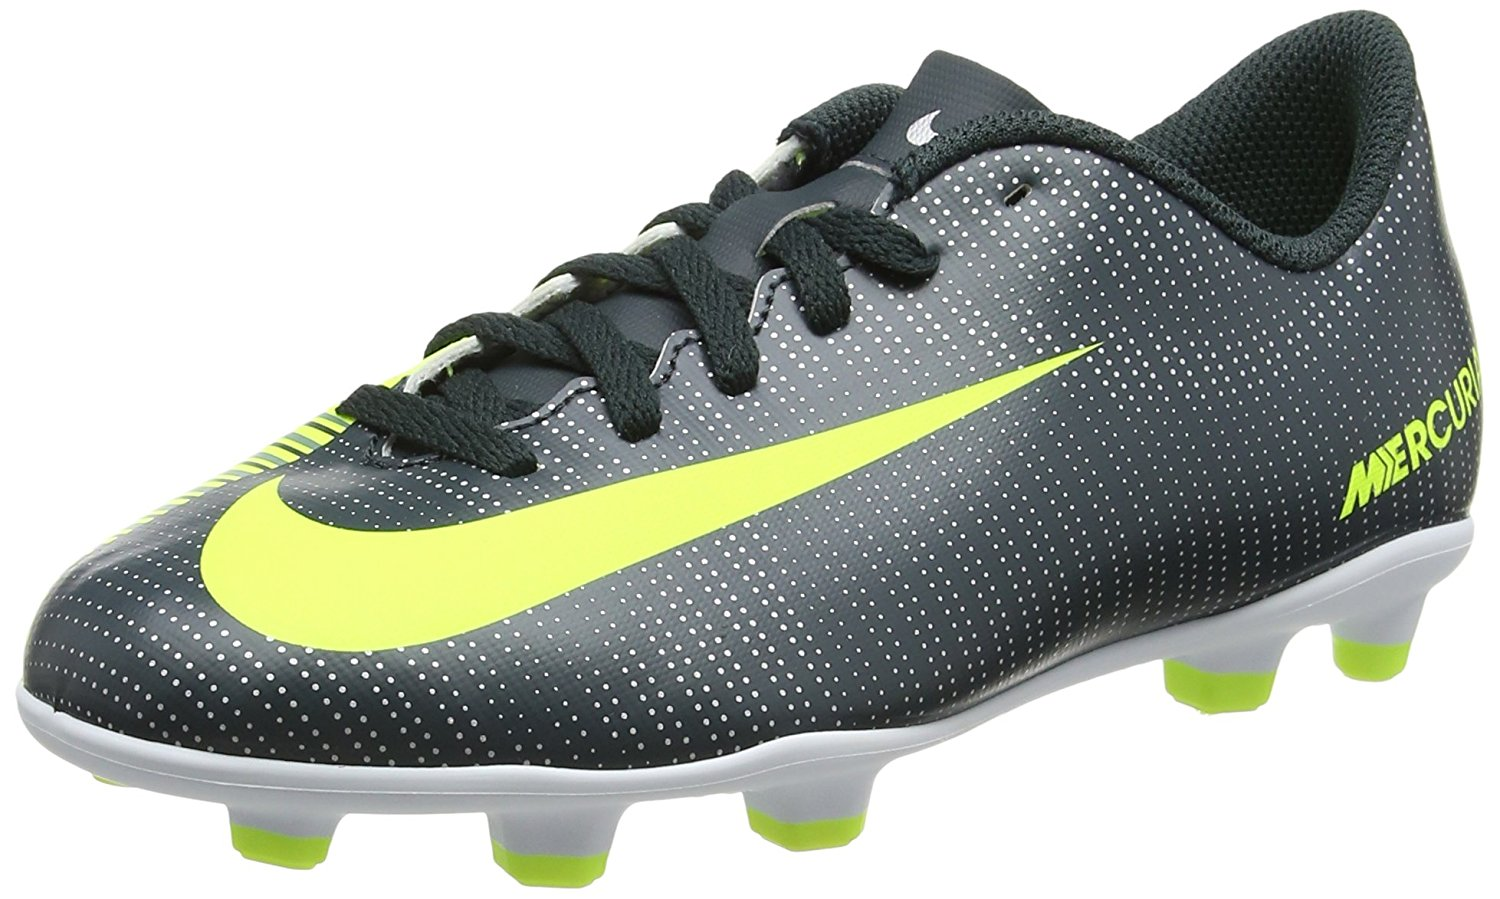 f1b633c4462 Buy Nike Kids Mercurial Vortex III FG CR7 Soccer Cleats in Cheap ...